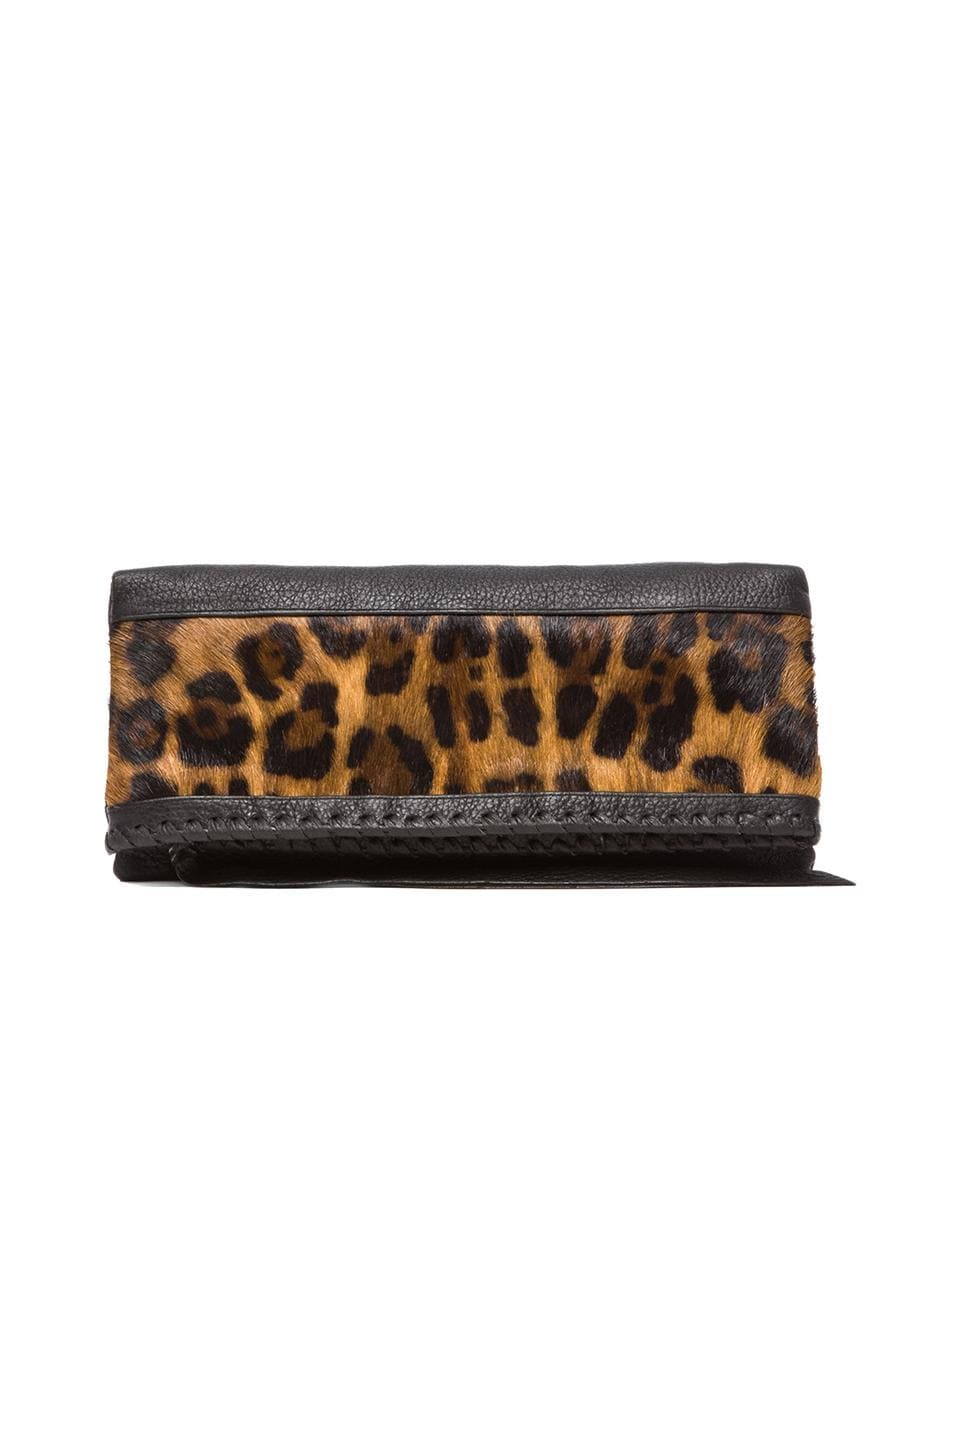 Cleobella EXCLUSIVE Jagger Clutch in Leopard